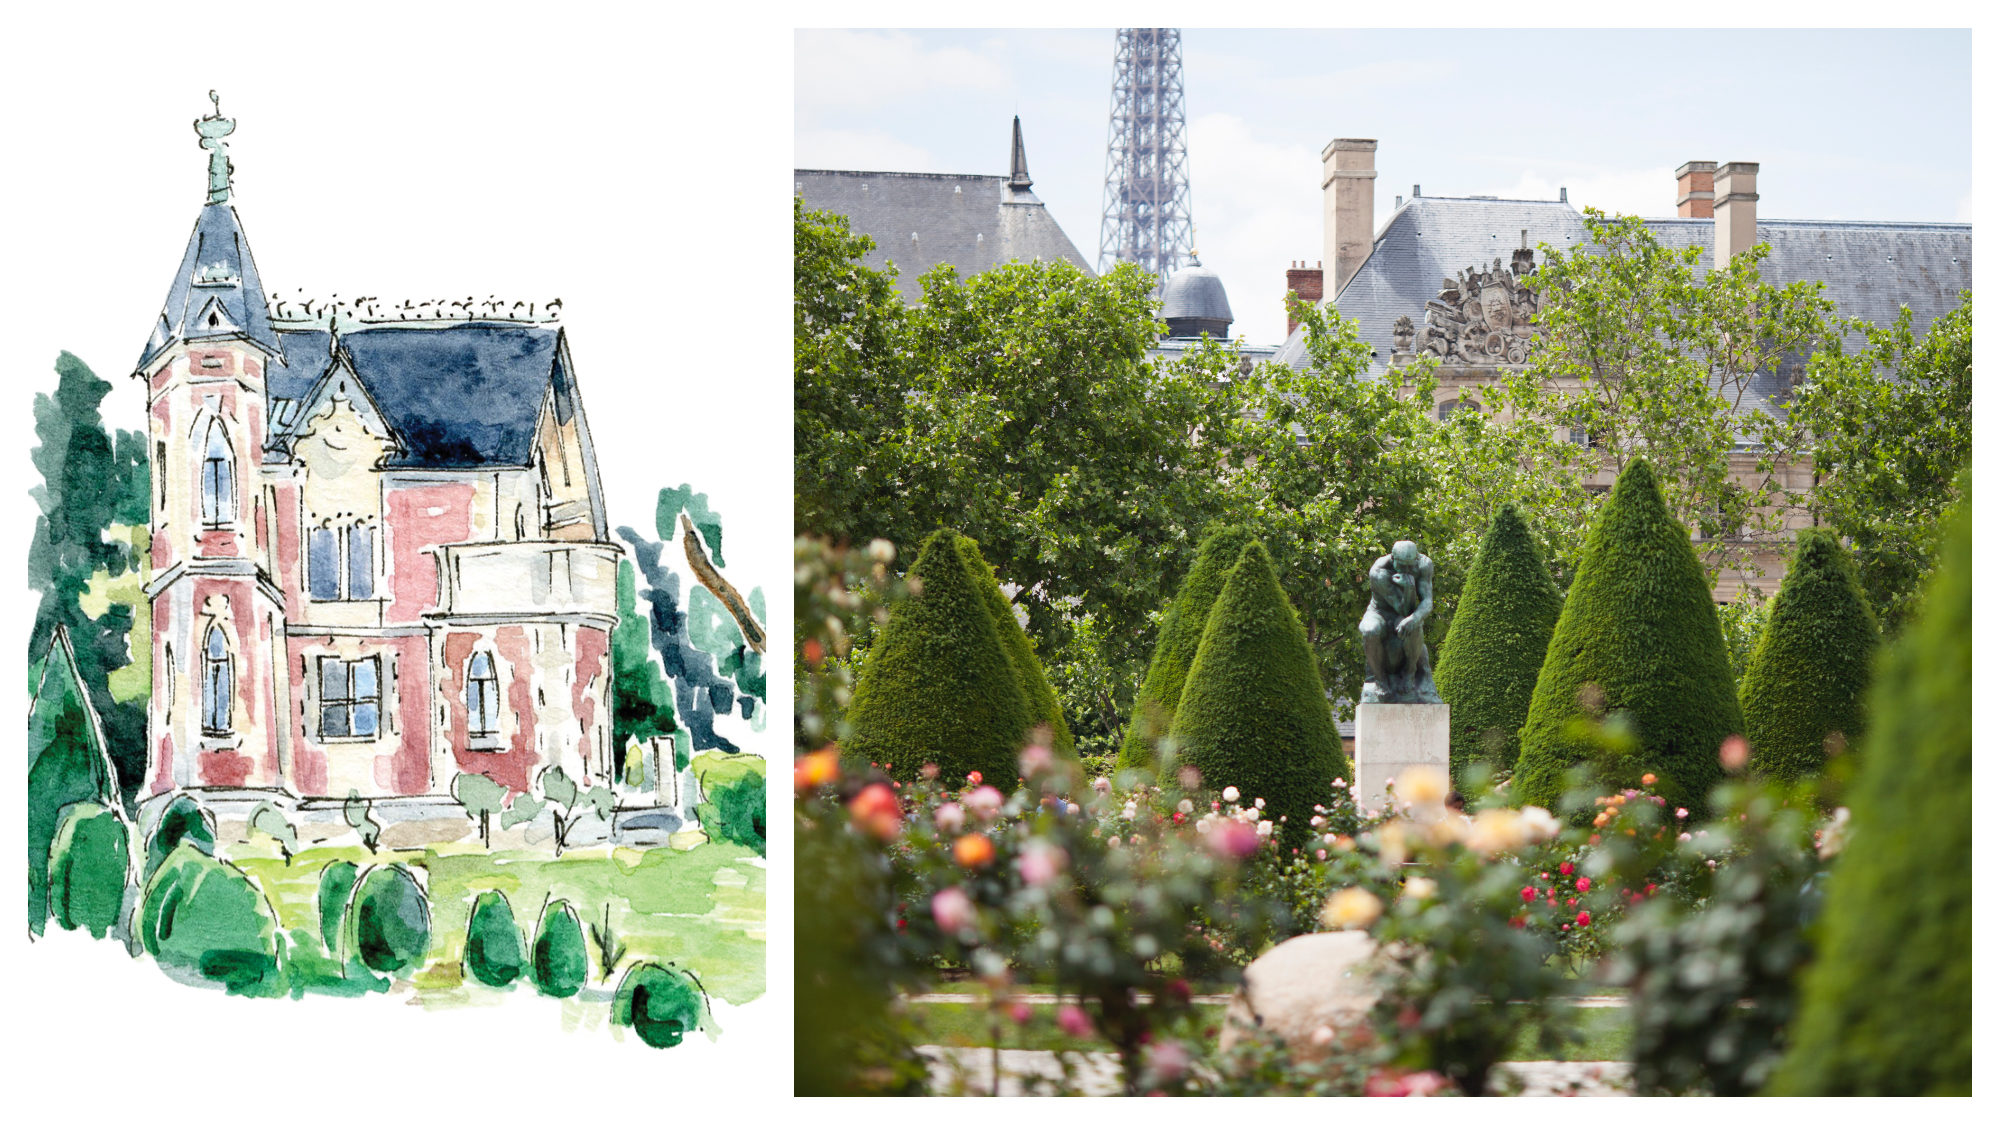 A sketch of the Monte Cristo chateau, Alexandre Dumas' home, now a museum, from illustrator Emma Jacobs' book Little(r) Museums of Paris (left). The Rodin Museum gardens with The Thinker sculpture among the trees (right).